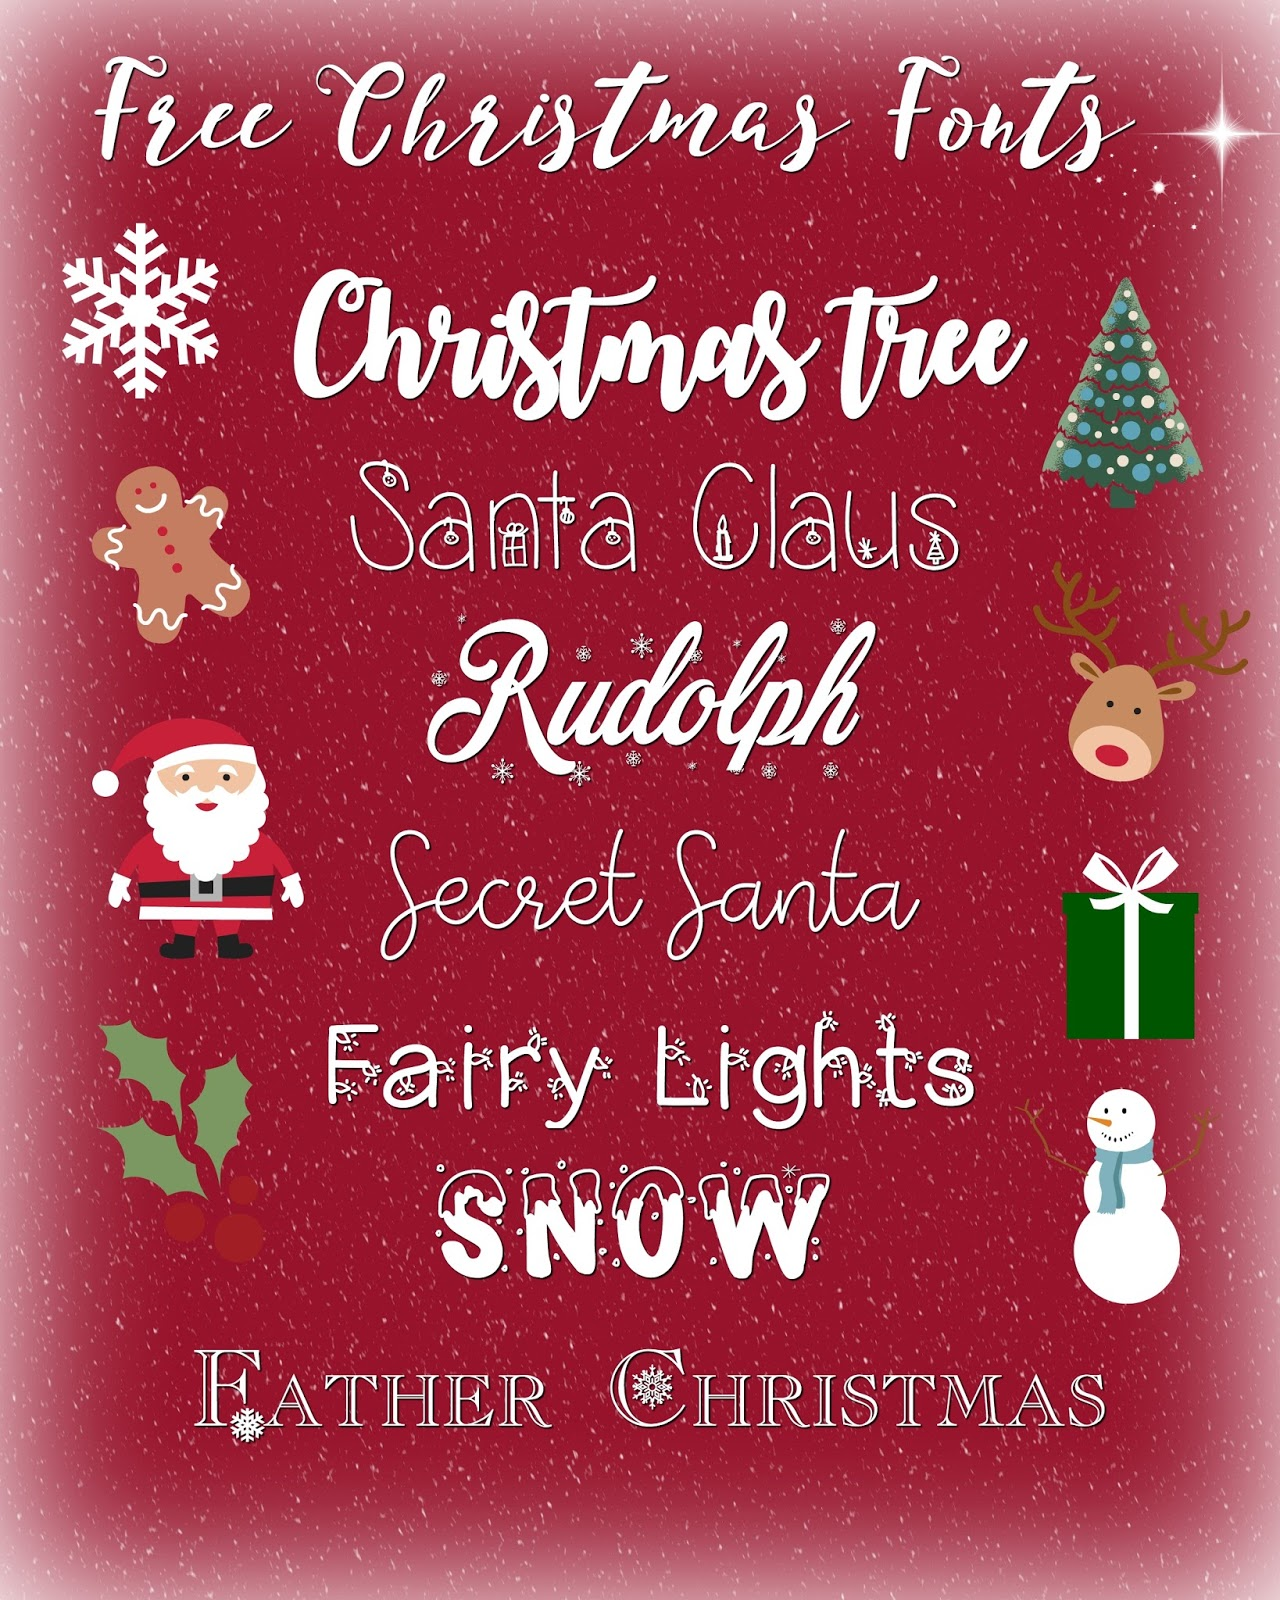 blogging lifestyle fonts resources free christmas fonts free fonts christmas - Christmas Fonts Free